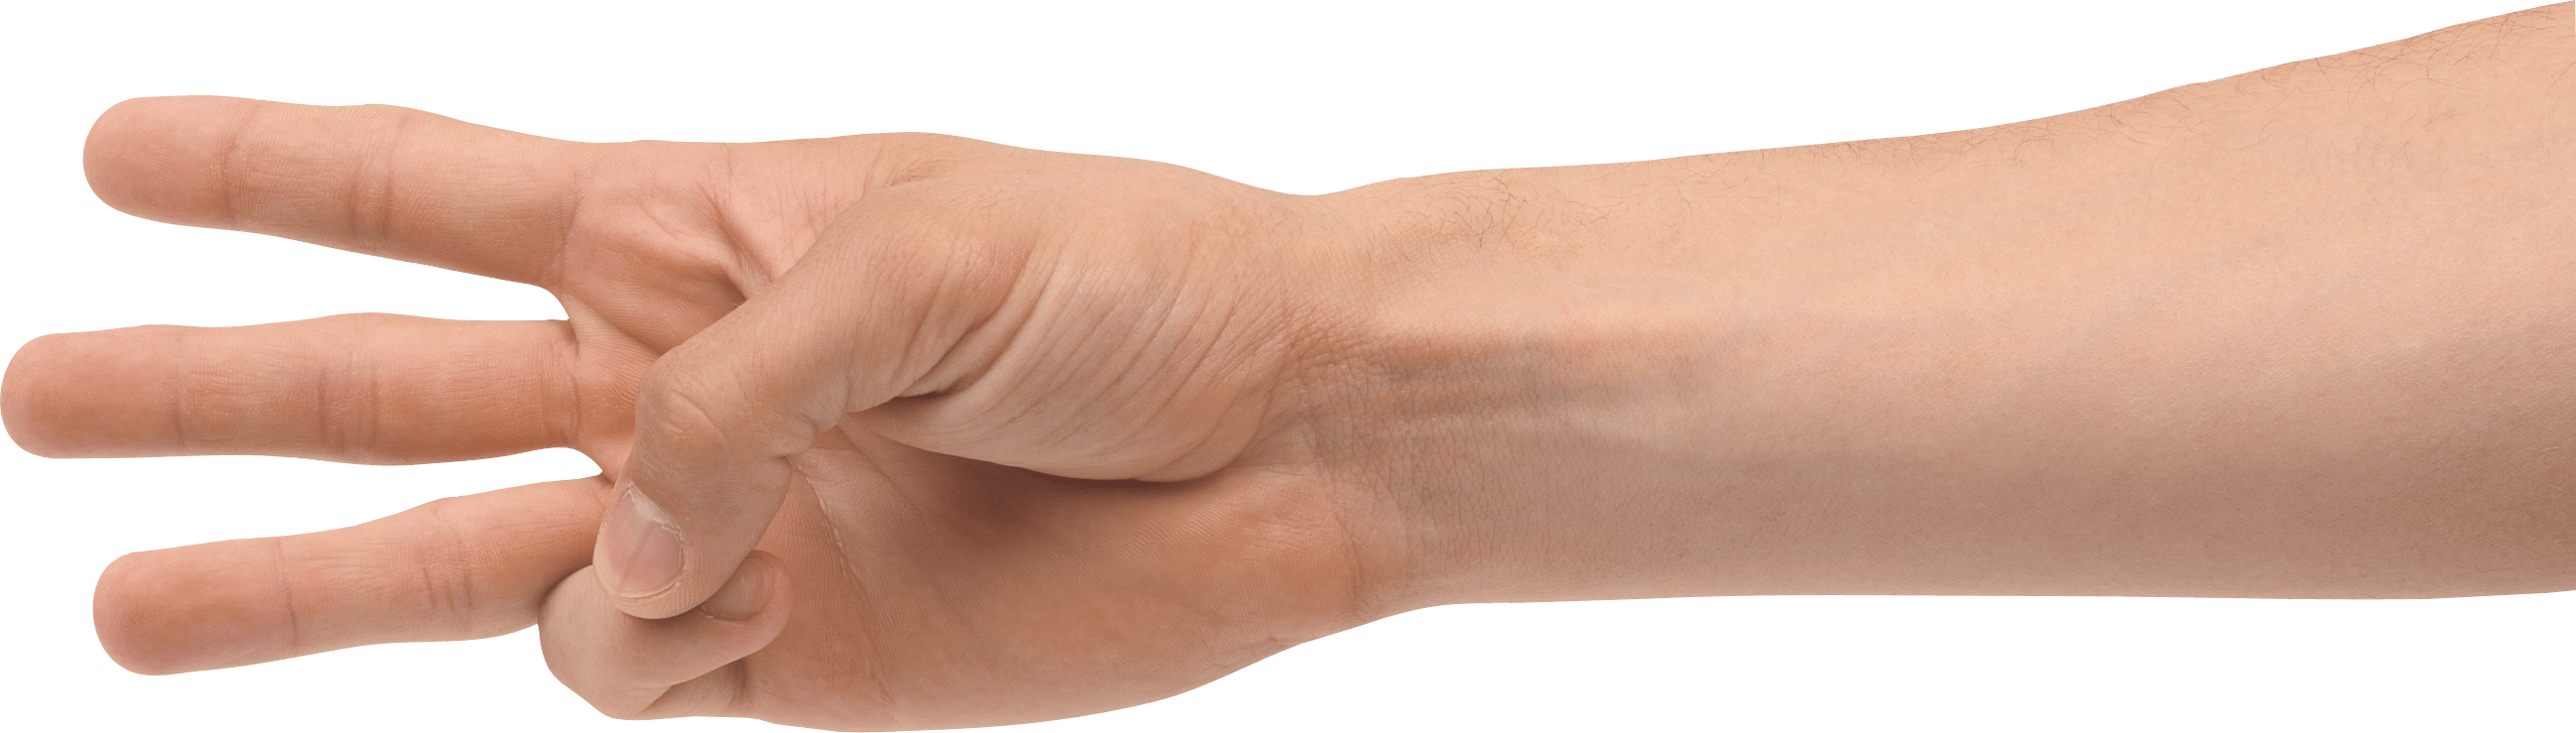 Three Fingers Png Image PNG Image